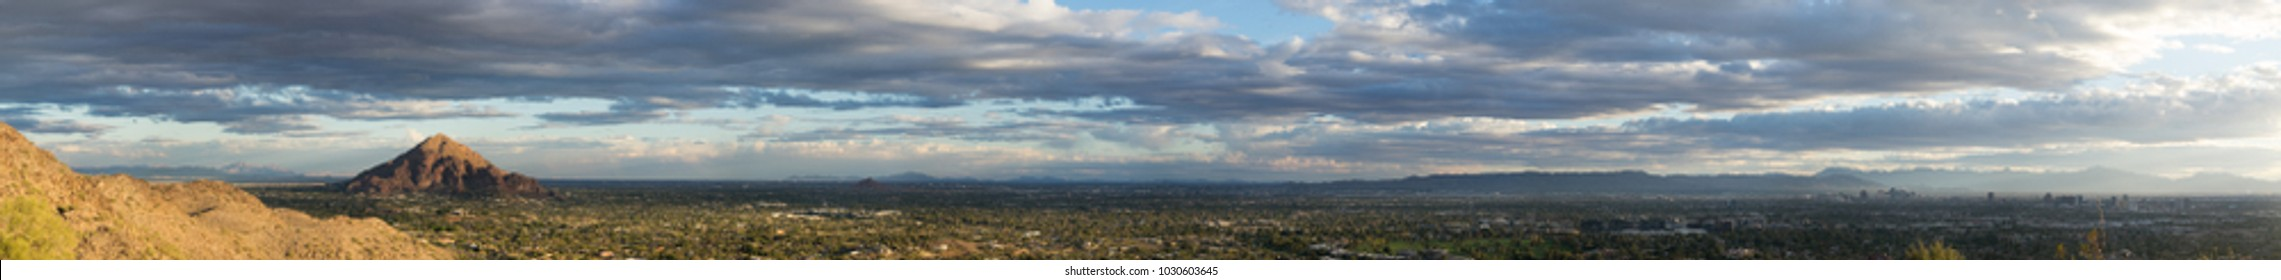 Phoenix, Arizona,USA. Hi Res Super wide Panoramic landscape Aerial viewpoint. Facing South from Phoenix Mountain Reserve.